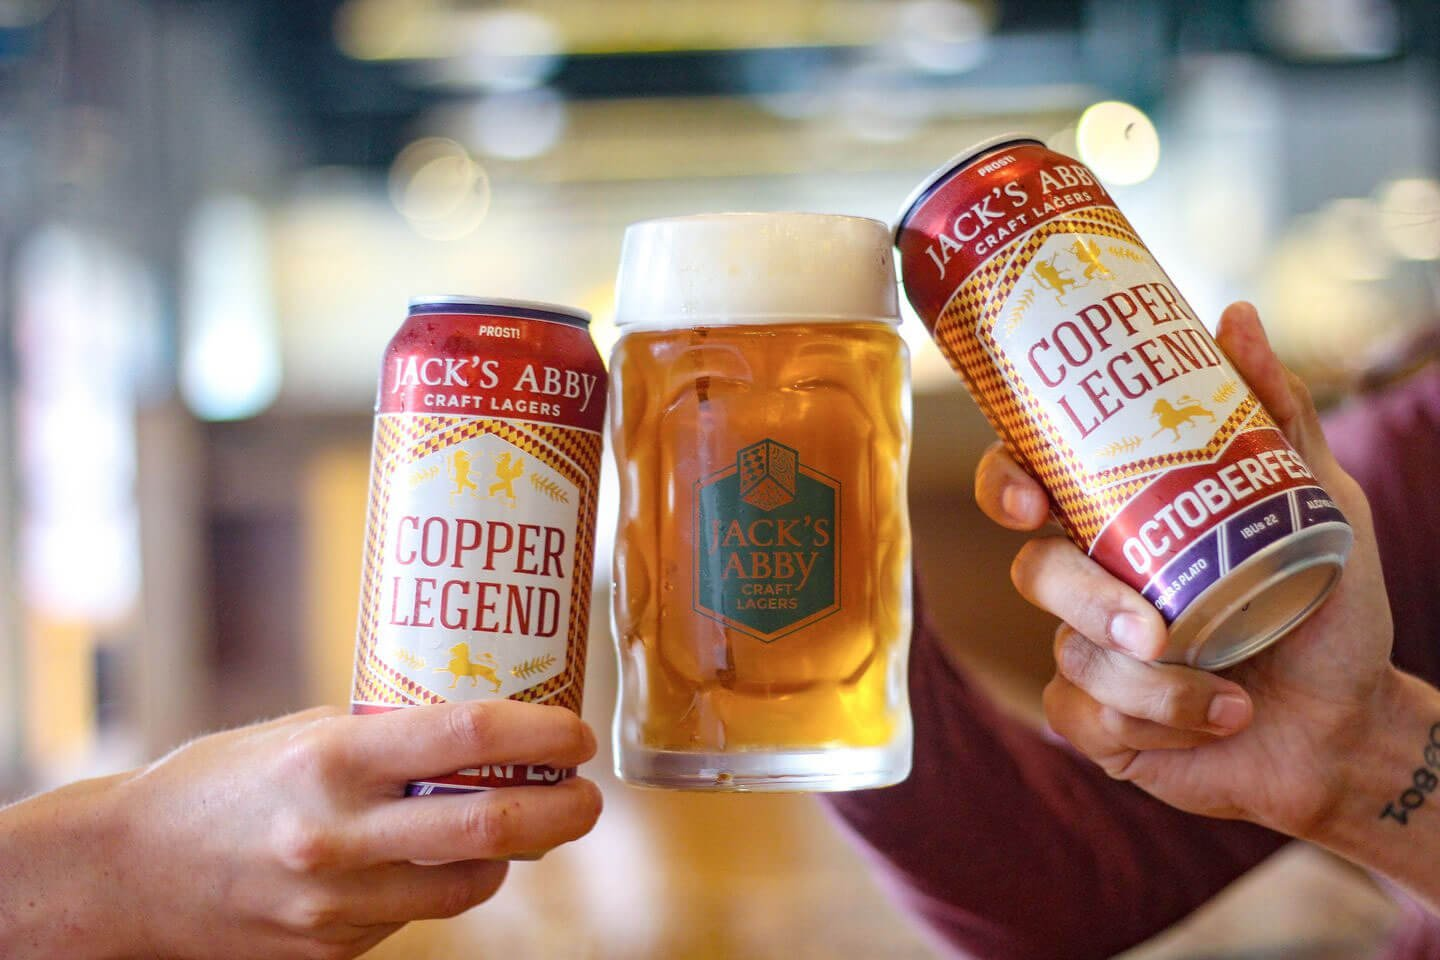 A trio of men toast with Copper Legend Oktoberfest beers by Jack's Abby Craft Lagers